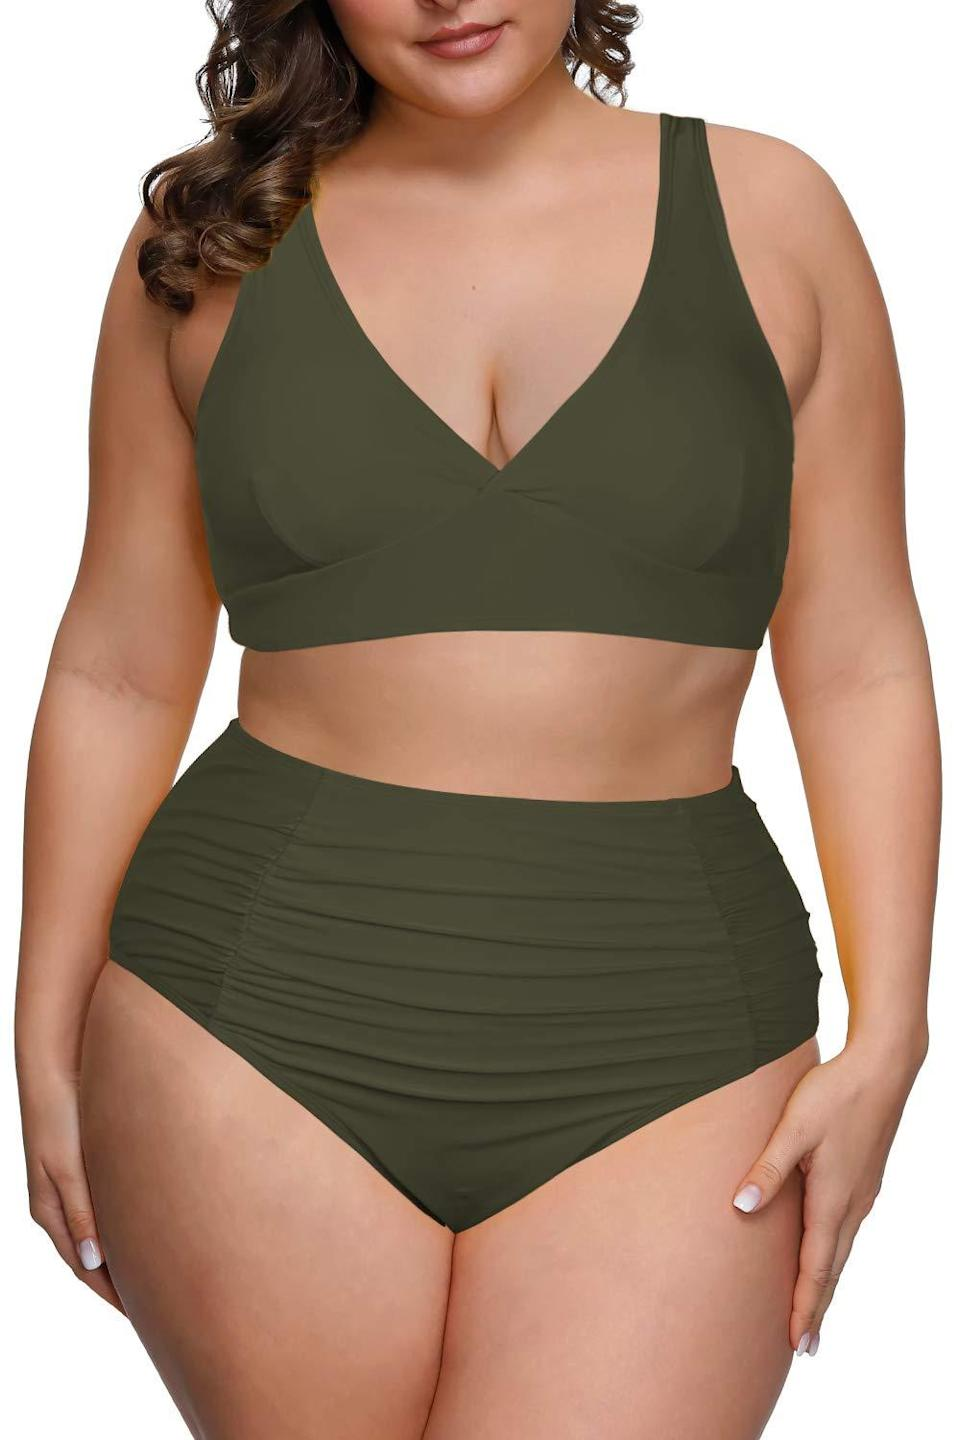 """<h2>Pink Queen High Waisted Ruched Tummy Control Bikini</h2><br>You can't go wrong with a monochromatic high-waisted bikini — especially when the color of choice is this earthy (and universally flattering) olive green. <br><br><strong>Hype:</strong> 4.2 out of 5 stars and 110 reviews<br><br><strong>Reviewers Say:</strong> """"Holy moly! This bikini is dope! I am a size 14-16 and I am 220lbs, 5'10, and have a pretty long torso and the bottoms are high wasted for sure, covers my belly button and then some. The orange is BRIGHT and I love it, it also has a slight shimmer type sheen to it and it is so much nicer than any other bikini I have ever seen or owned. The top fits well but my 38 Ds are ample and it supports. I didn't have any spilling-out issues. This bikini makes me feel like Beyoncé!""""<br><br><em>Shop<strong><a href=""""https://www.amazon.com/Pink-Queen-Swimwear-Waisted-Swimsuits/dp/B0842GFBK2/ref=sxin_9_sbv_search_btf"""" rel=""""nofollow noopener"""" target=""""_blank"""" data-ylk=""""slk:Amazon"""" class=""""link rapid-noclick-resp""""> Amazon</a></strong></em><br><br><strong>Pink Queen</strong> High Waisted Ruched Tummy Control Bikini Set, $, available at <a href=""""https://www.amazon.com/Pink-Queen-Swimwear-Waisted-Swimsuits/dp/B0842GFBK2/ref=sxin_9_sbv_search_btf"""" rel=""""nofollow noopener"""" target=""""_blank"""" data-ylk=""""slk:Amazon"""" class=""""link rapid-noclick-resp"""">Amazon</a>"""